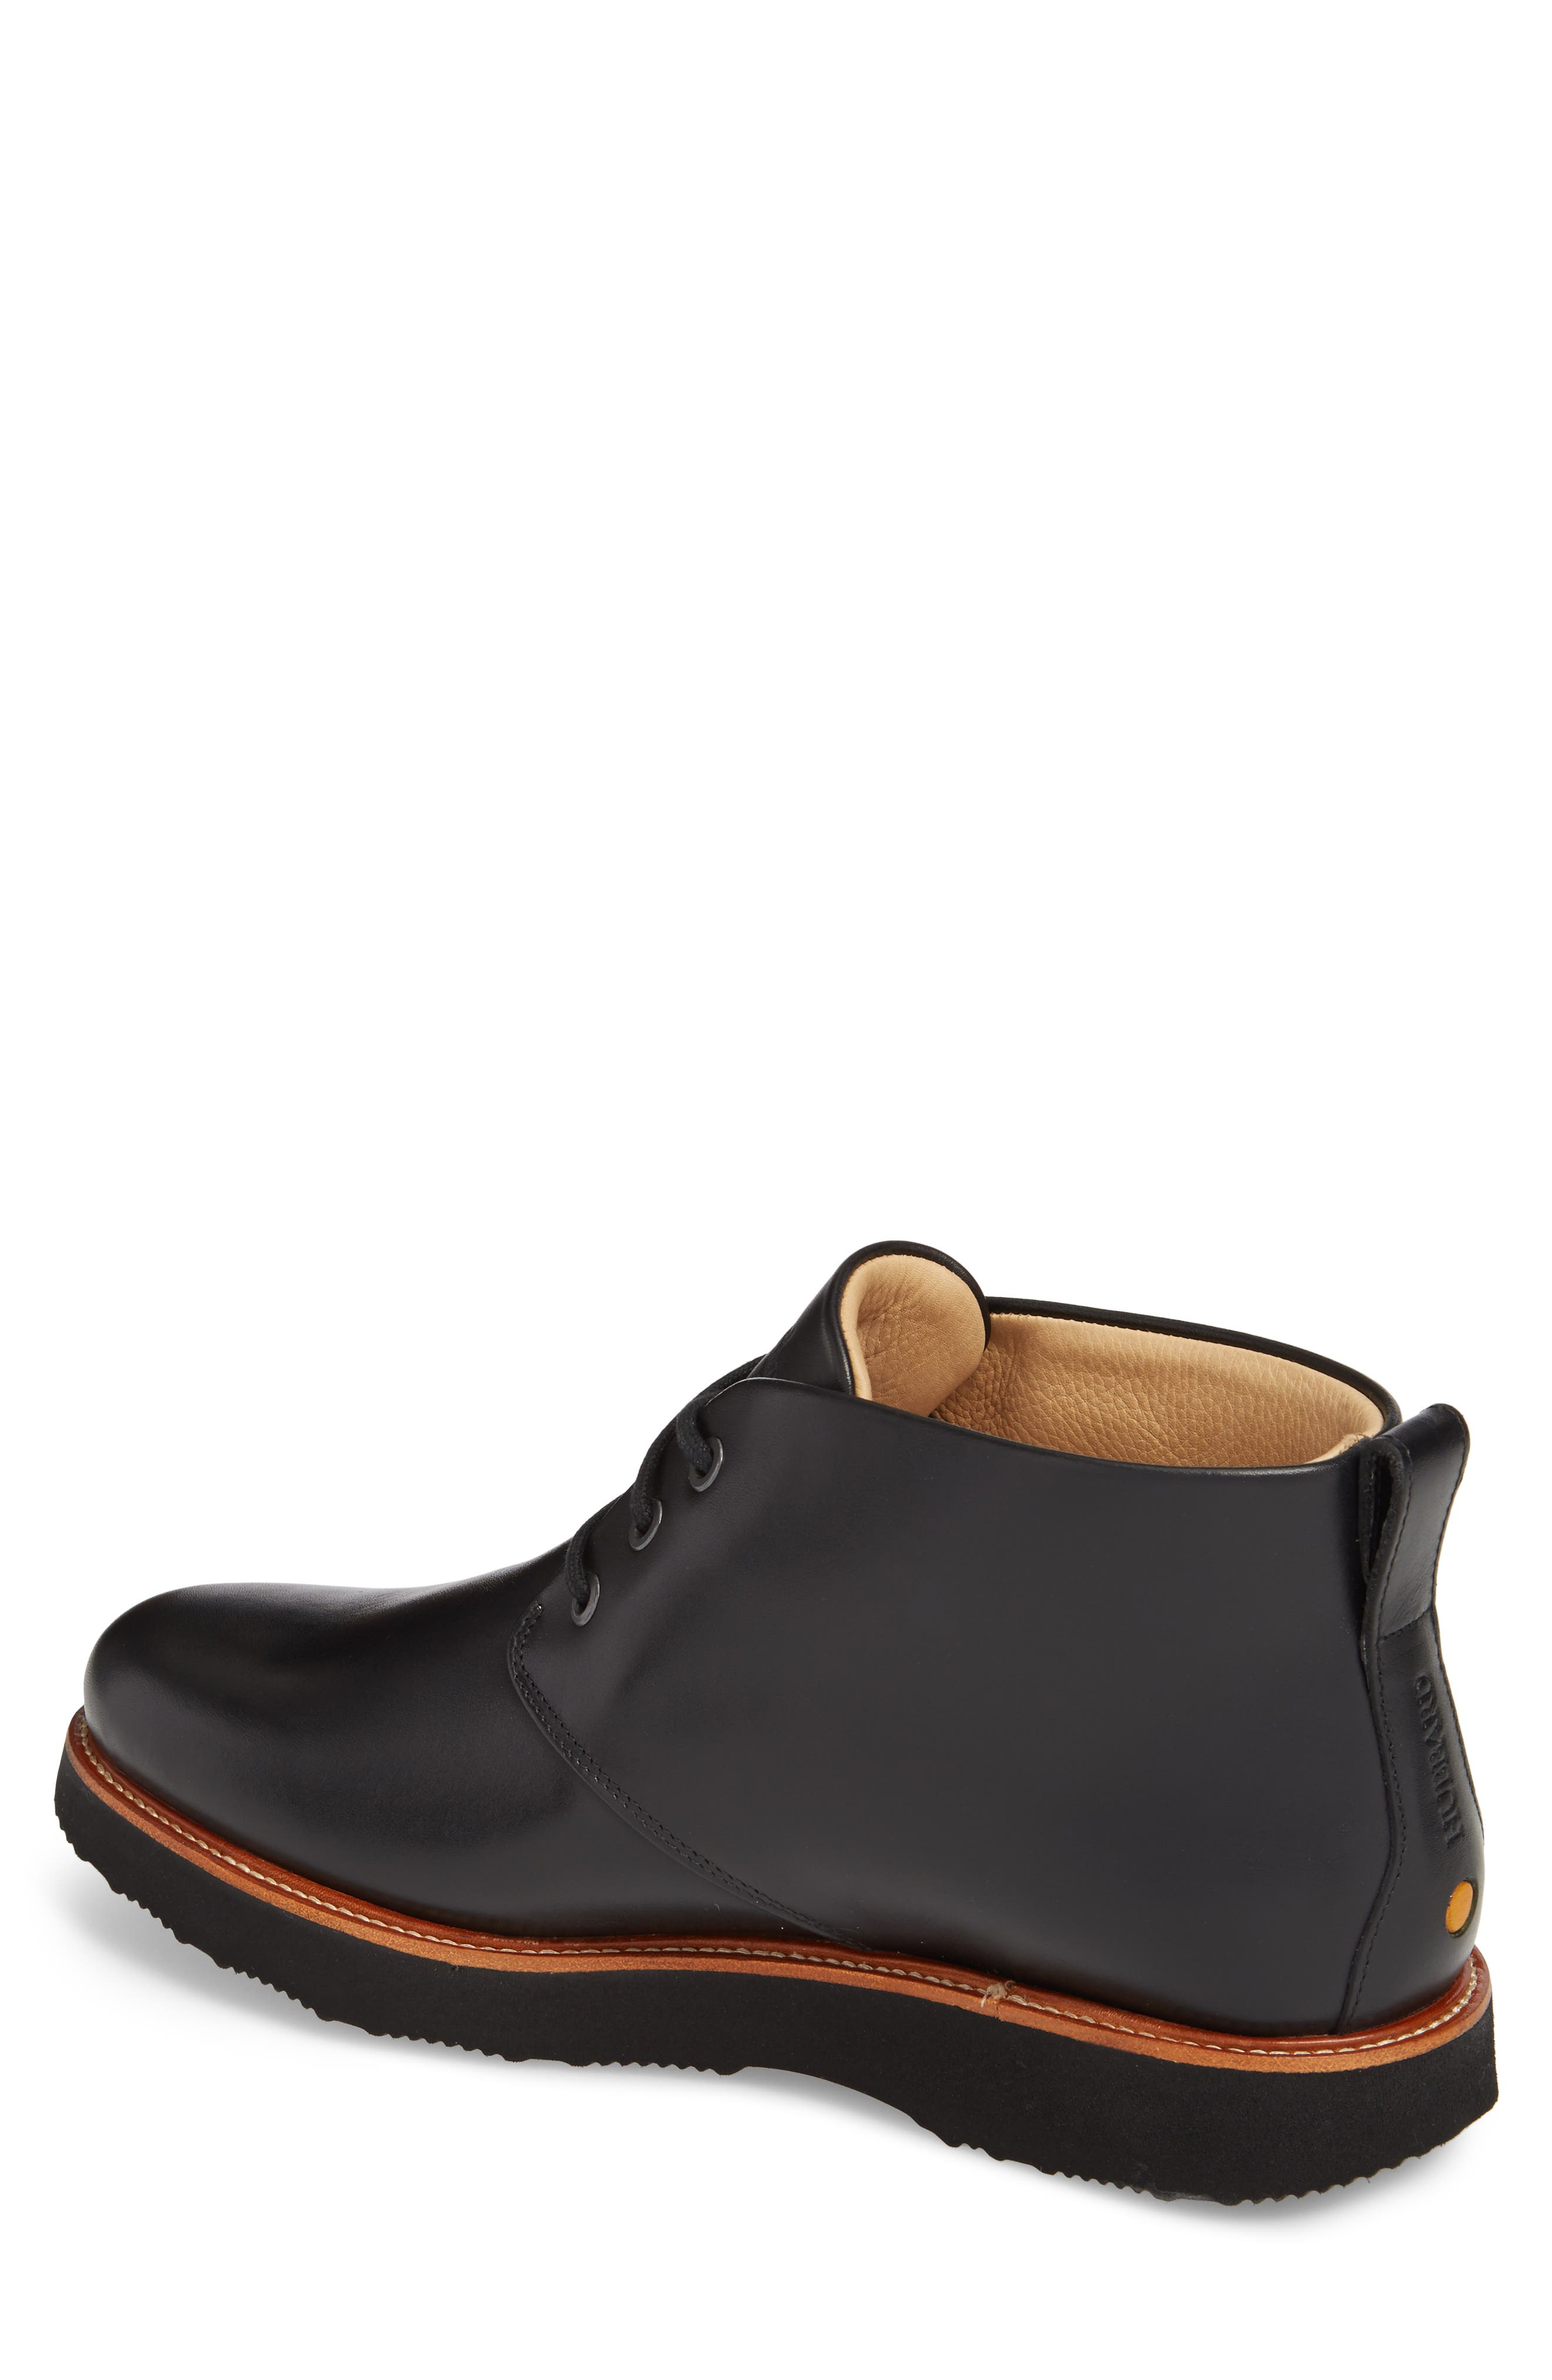 Re-Boot Waterproof Gore-Tex<sup>®</sup> Chukka Boot,                             Alternate thumbnail 2, color,                             BLACK LEATHER